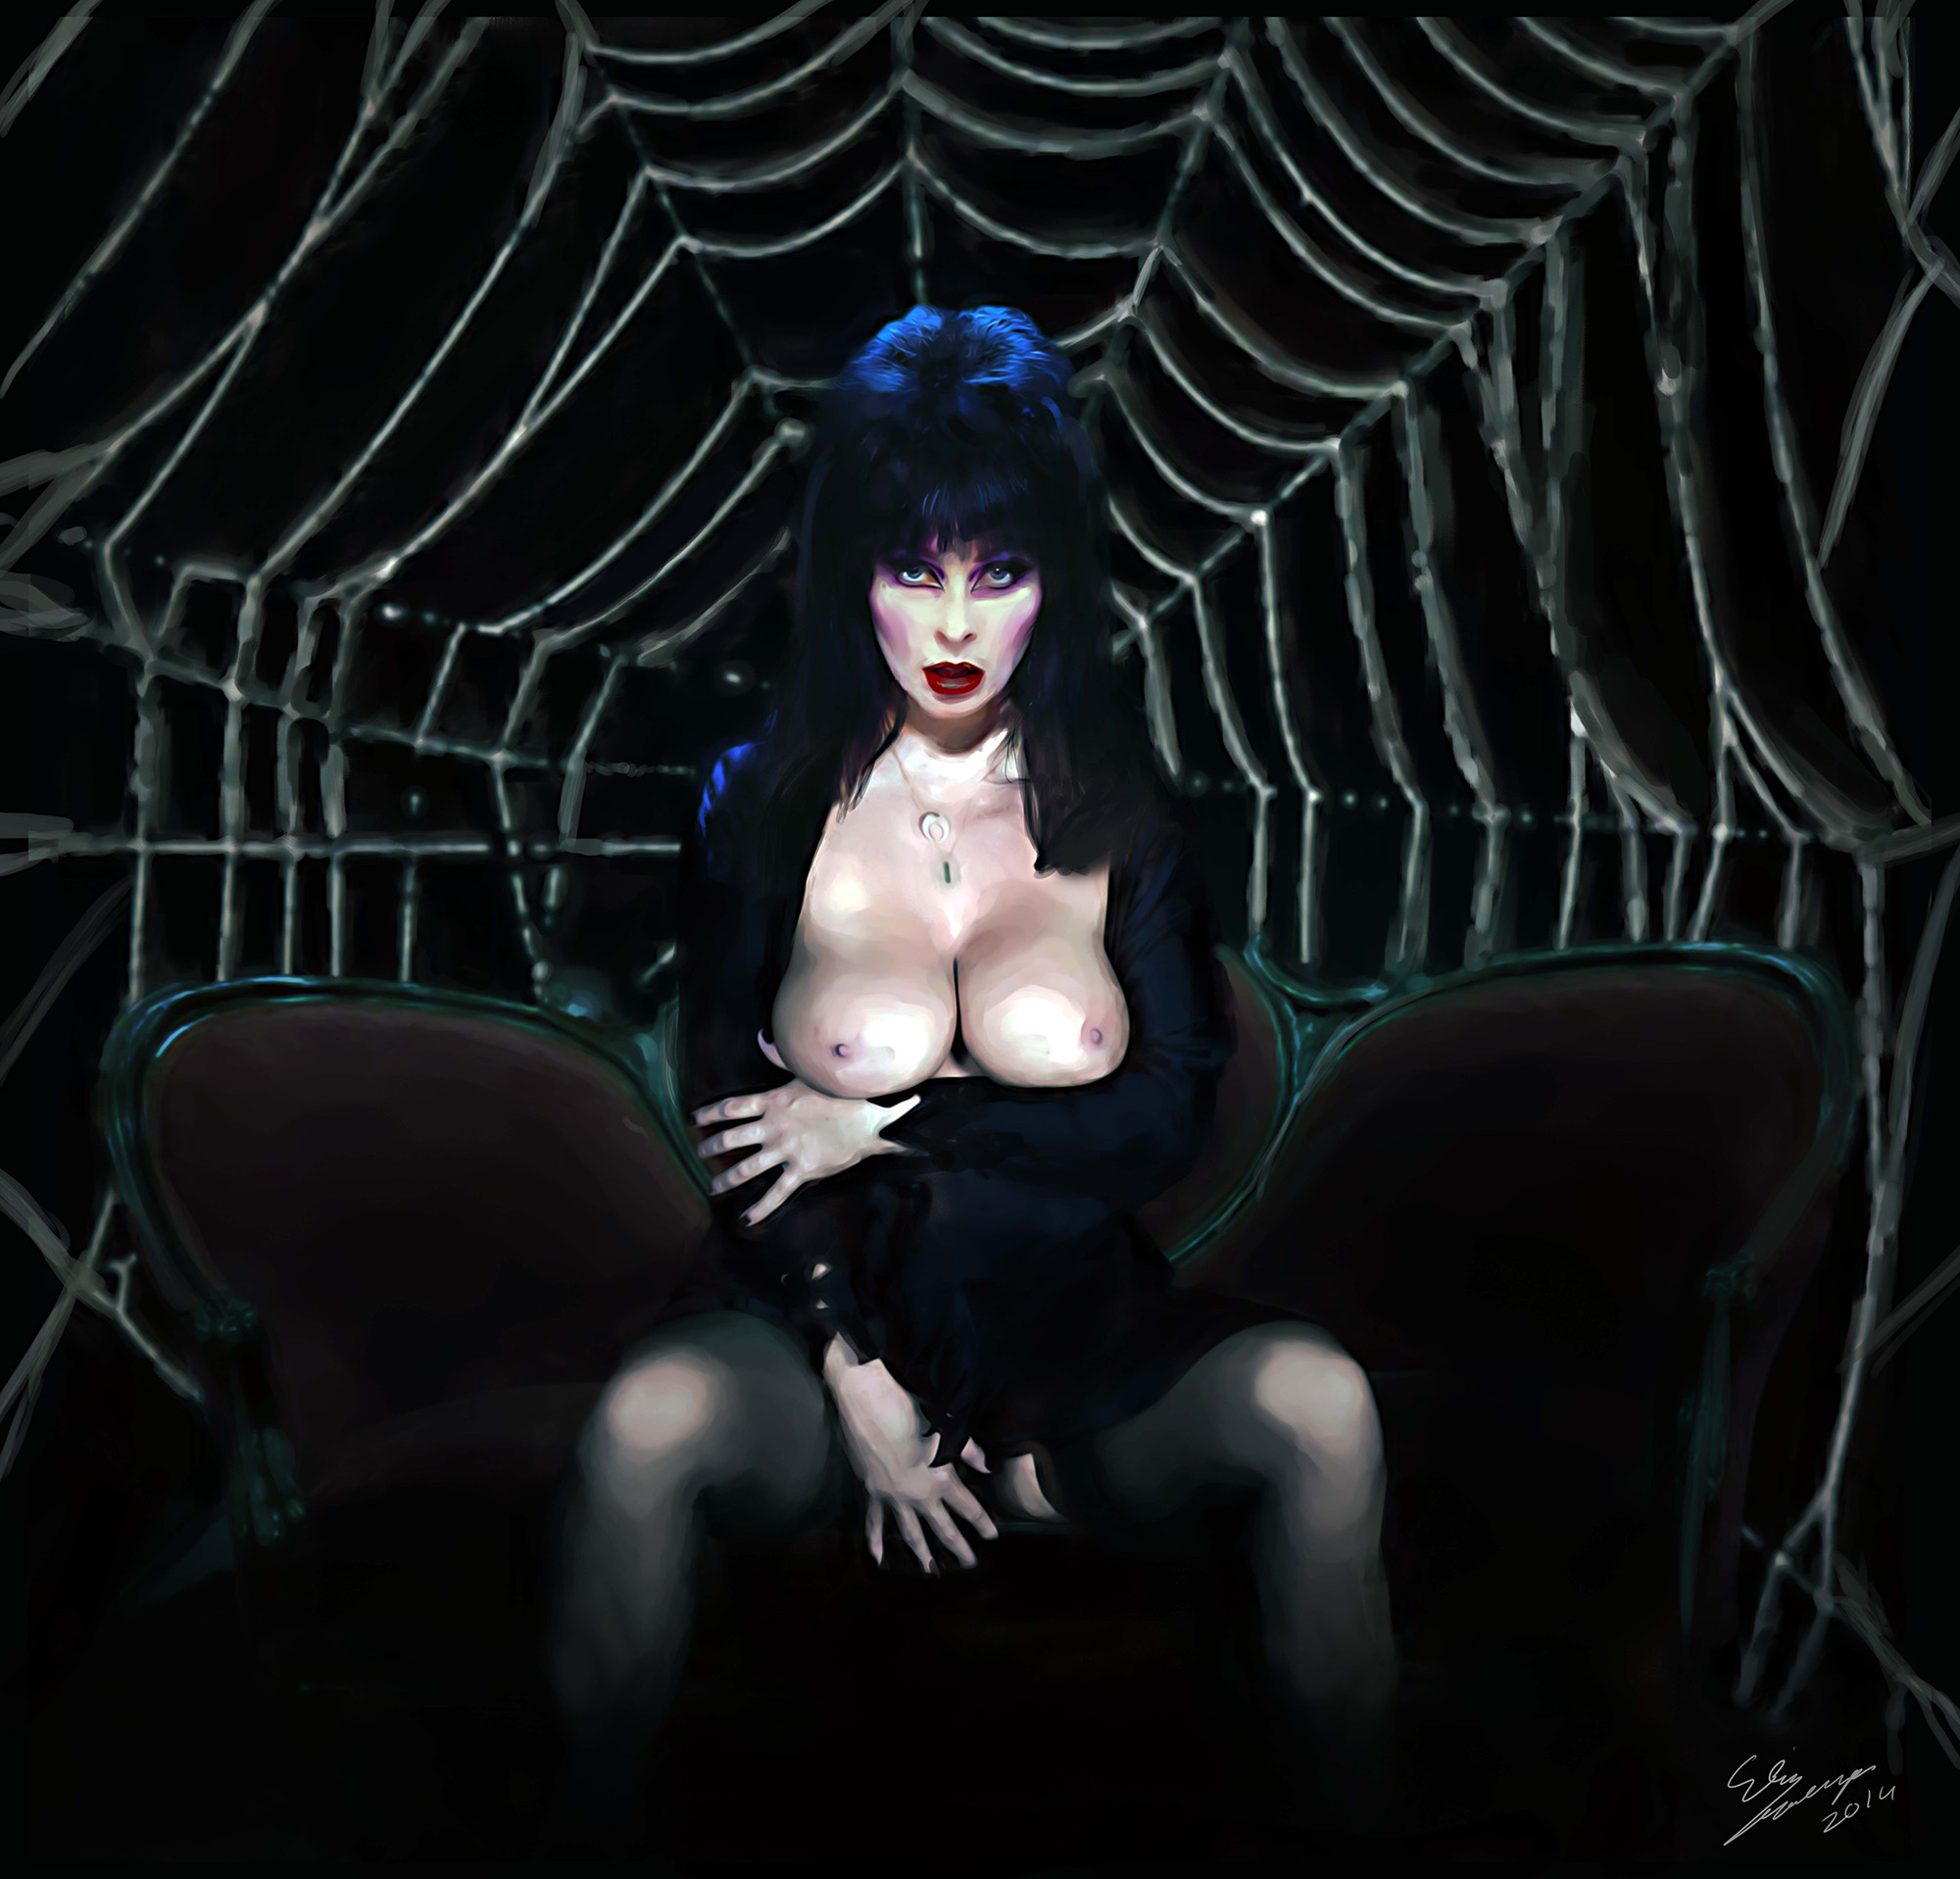 elvira dark mistress naked